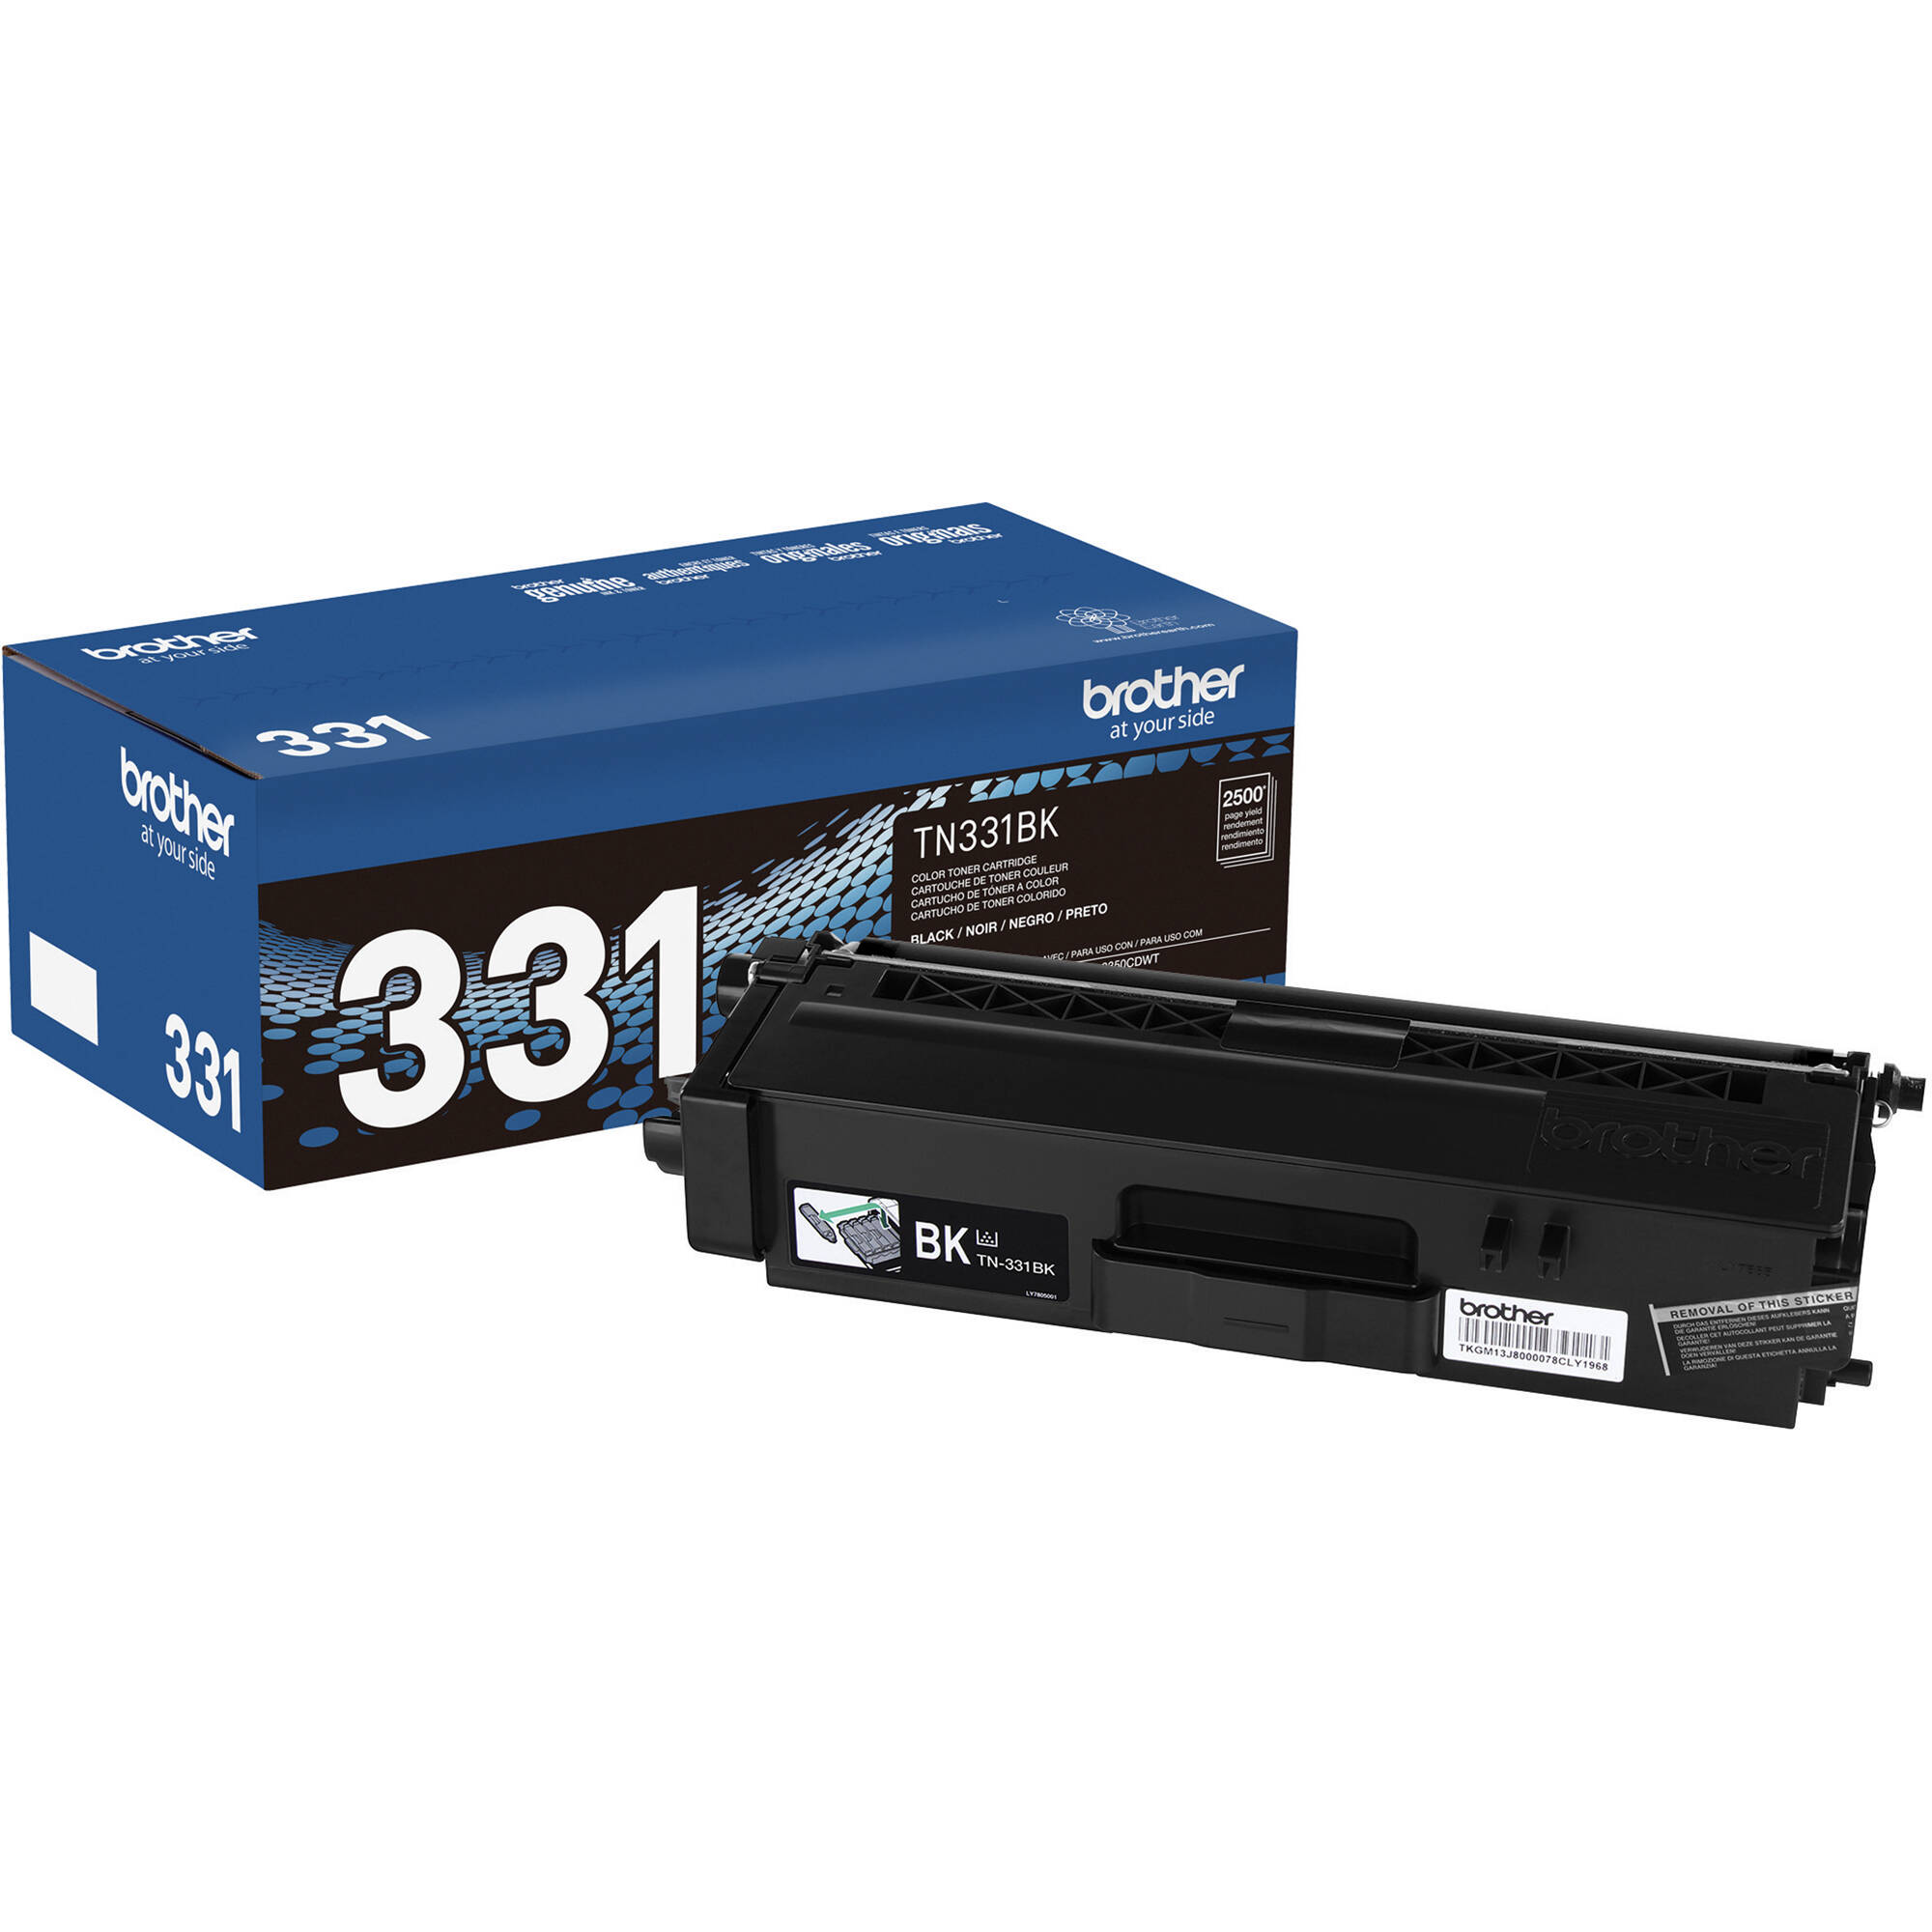 BROTHER 8600DN DRIVER FOR WINDOWS 8